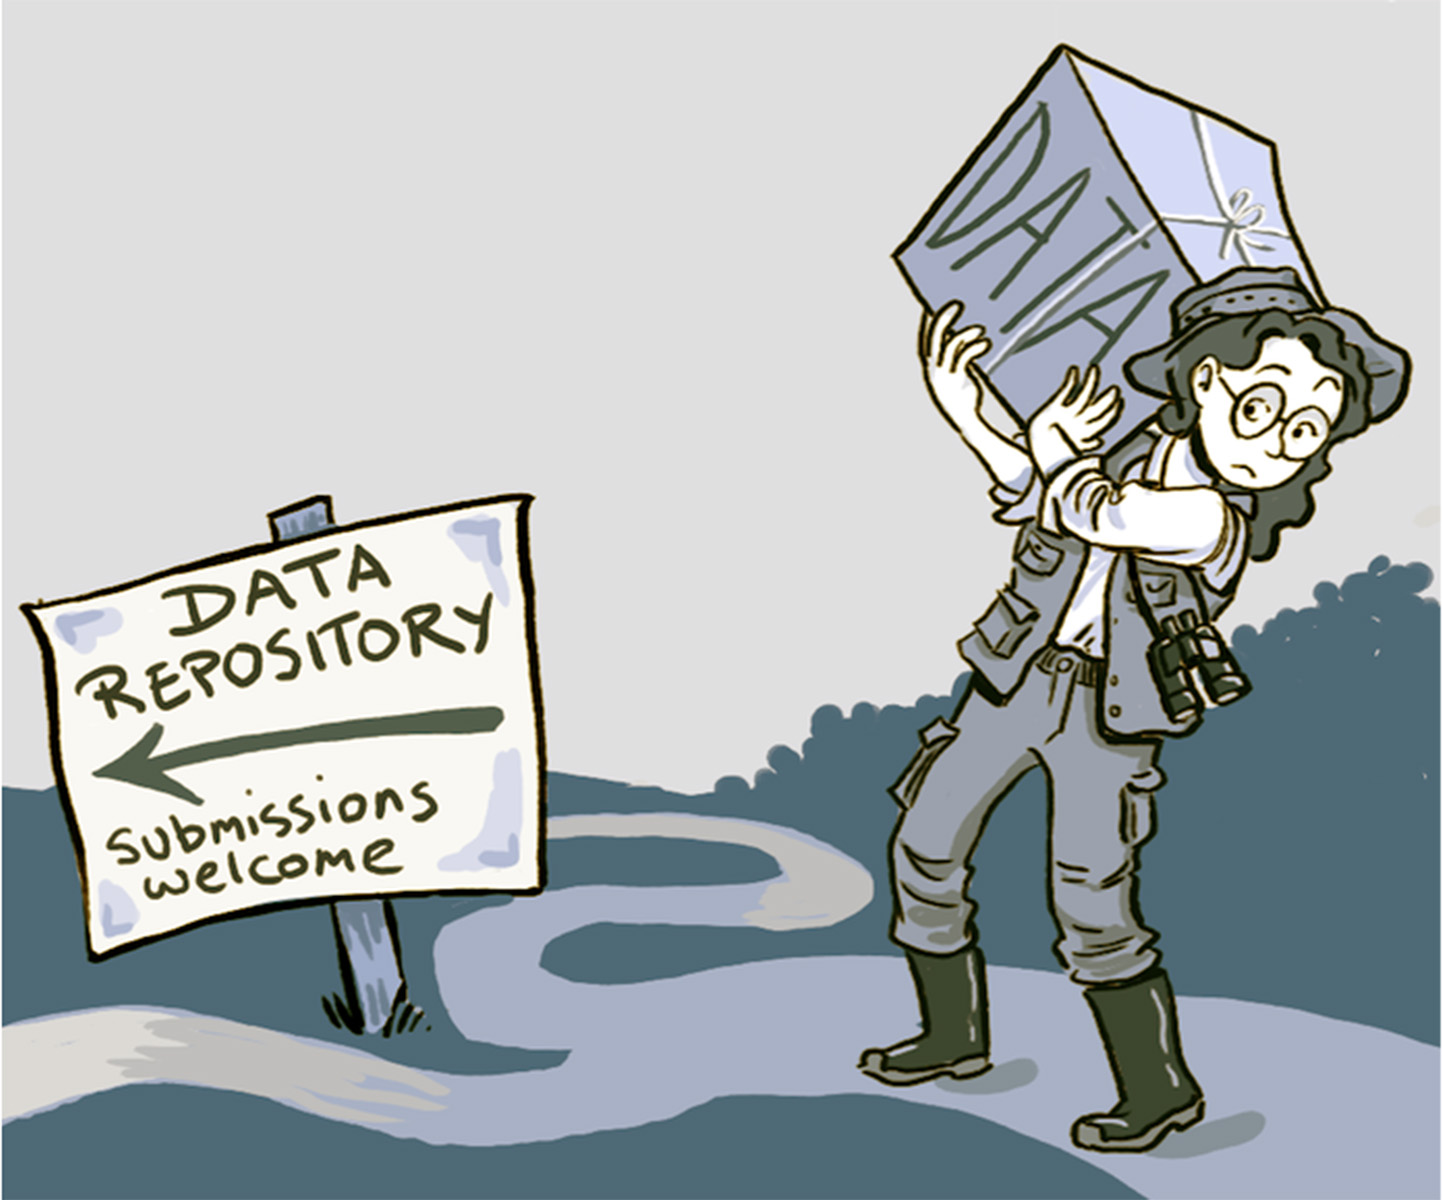 Cartoon showing the way to a data repository.